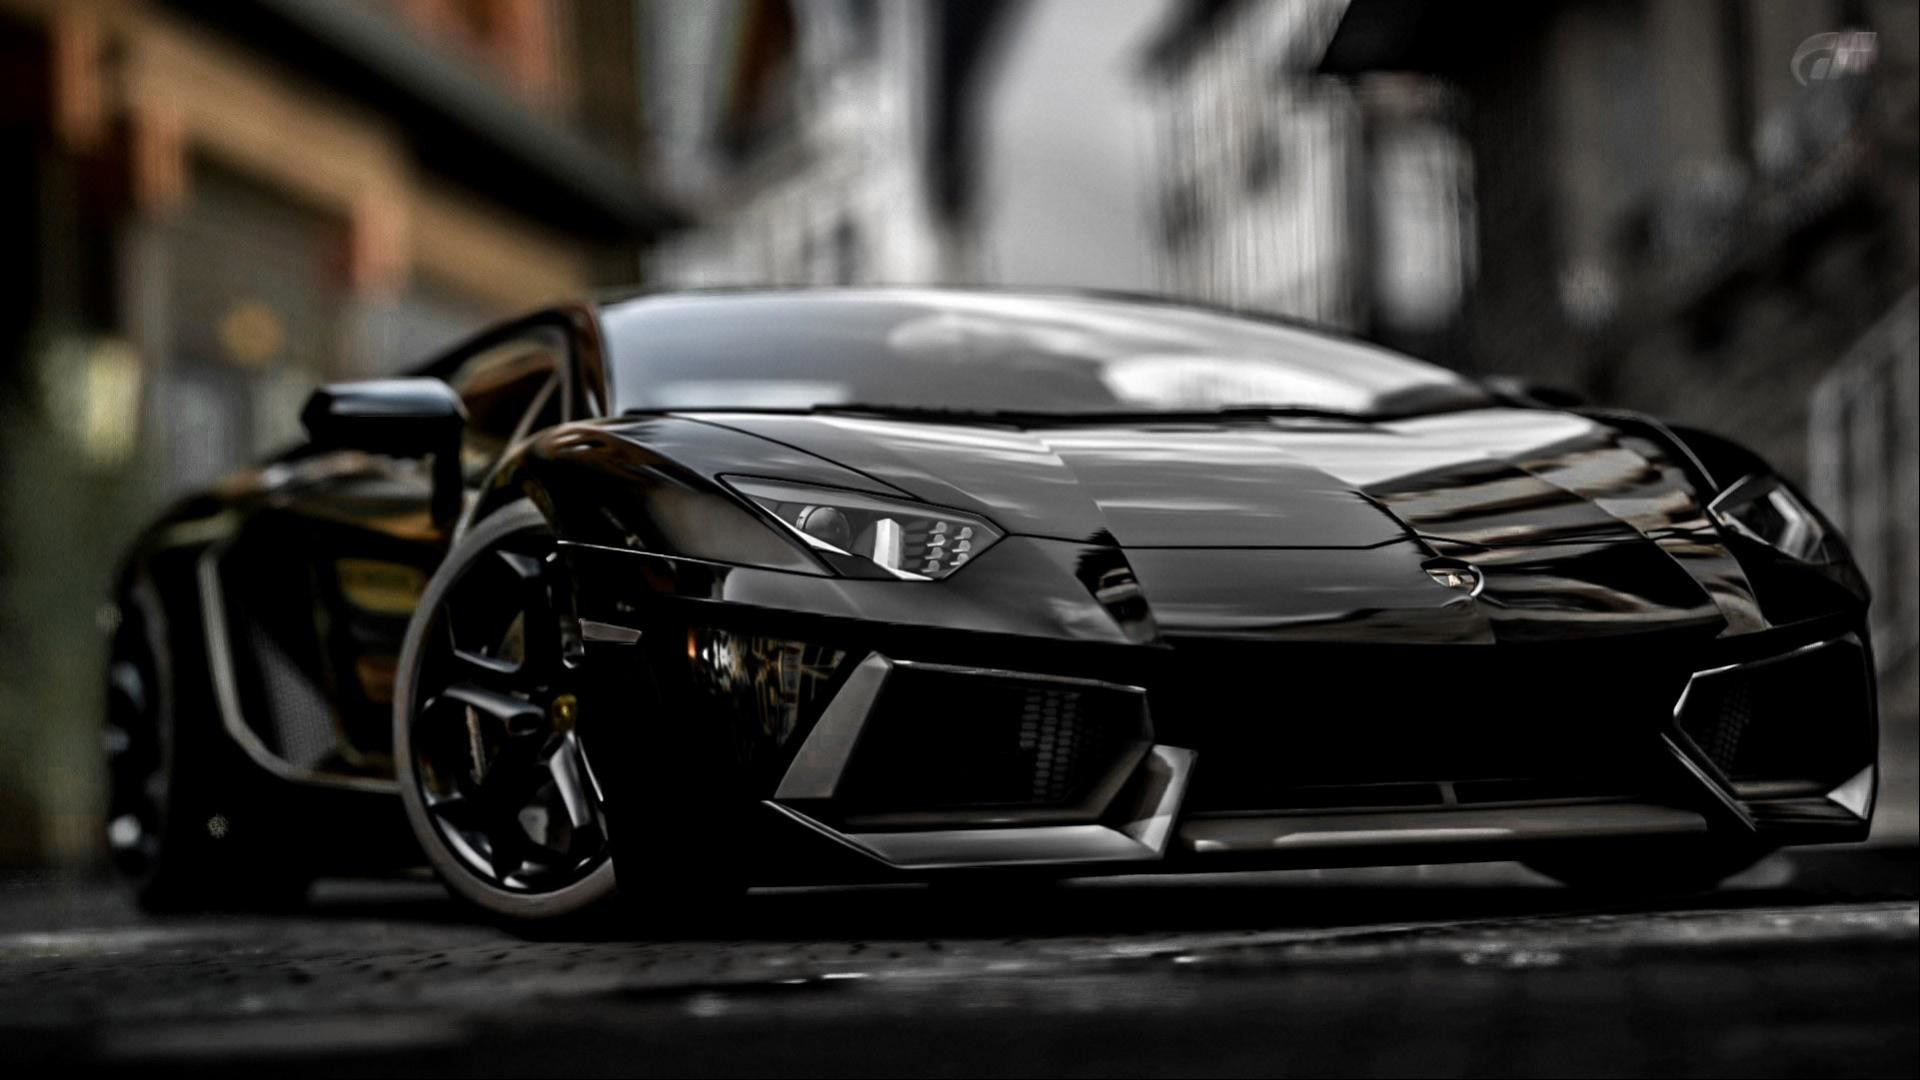 Res: 1920x1080, Download Lamborghini All Cars Wallpapers Hd Desktop Lambhini Aventador  Black Best New Car For Pc